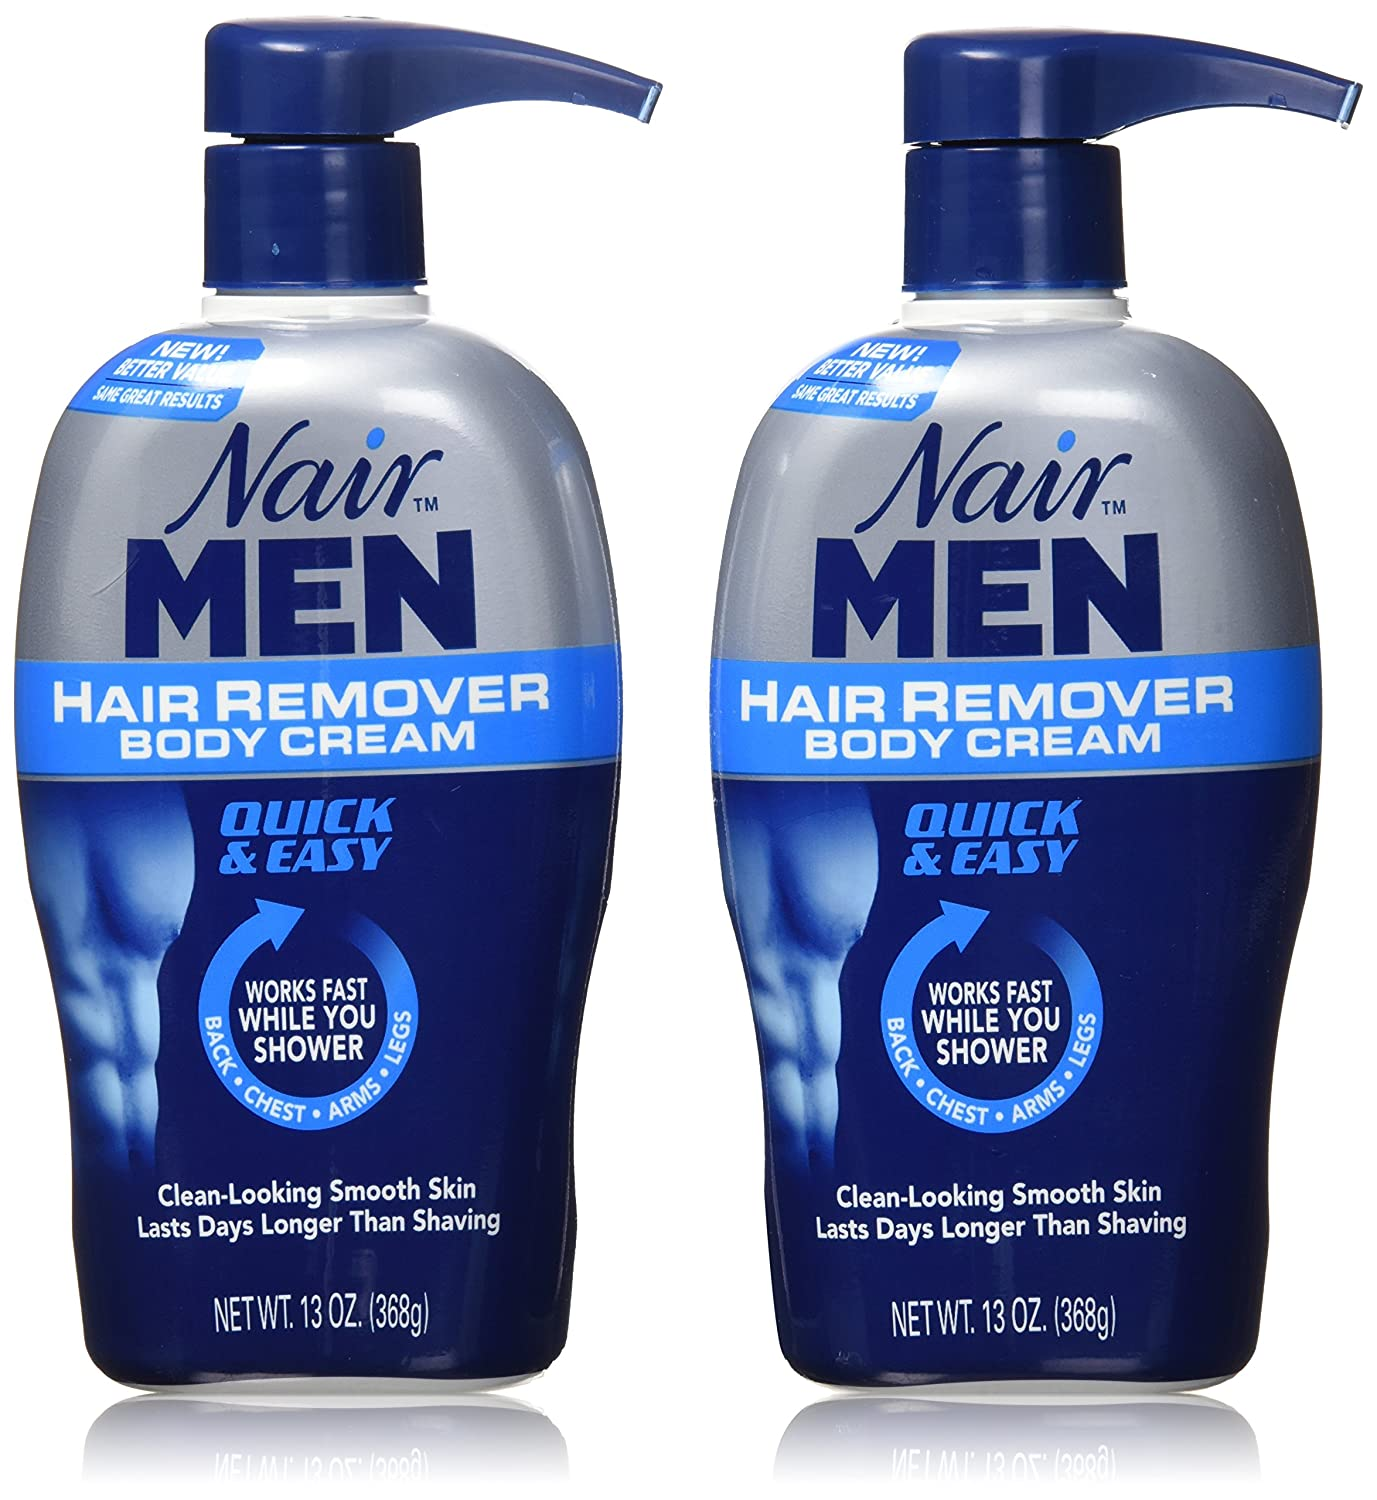 Amazon.com: Nair Men crema para eliminar el cabello, 33 ml ...